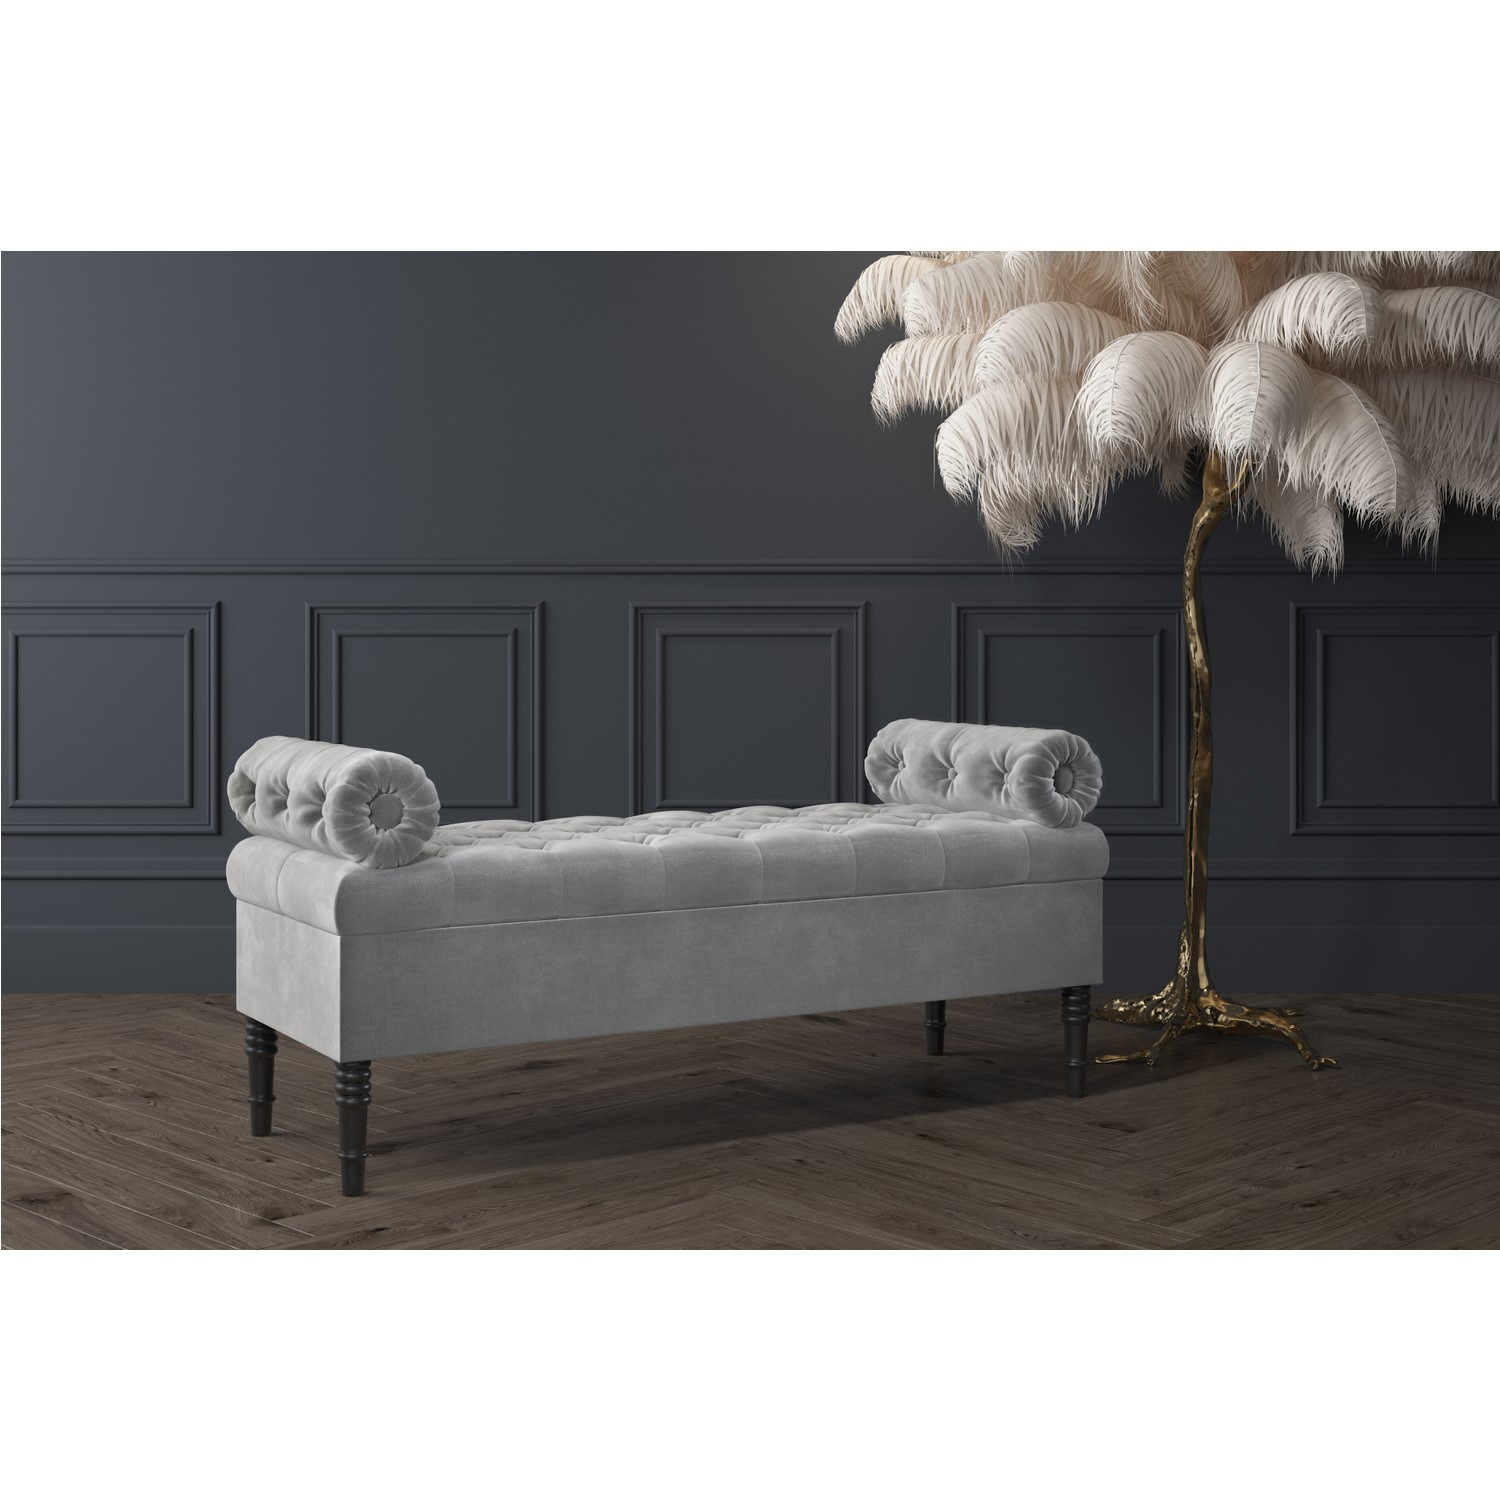 Safina Ottoman Storage Bench In Grey Velvet With Bolster Cushions Furniture123